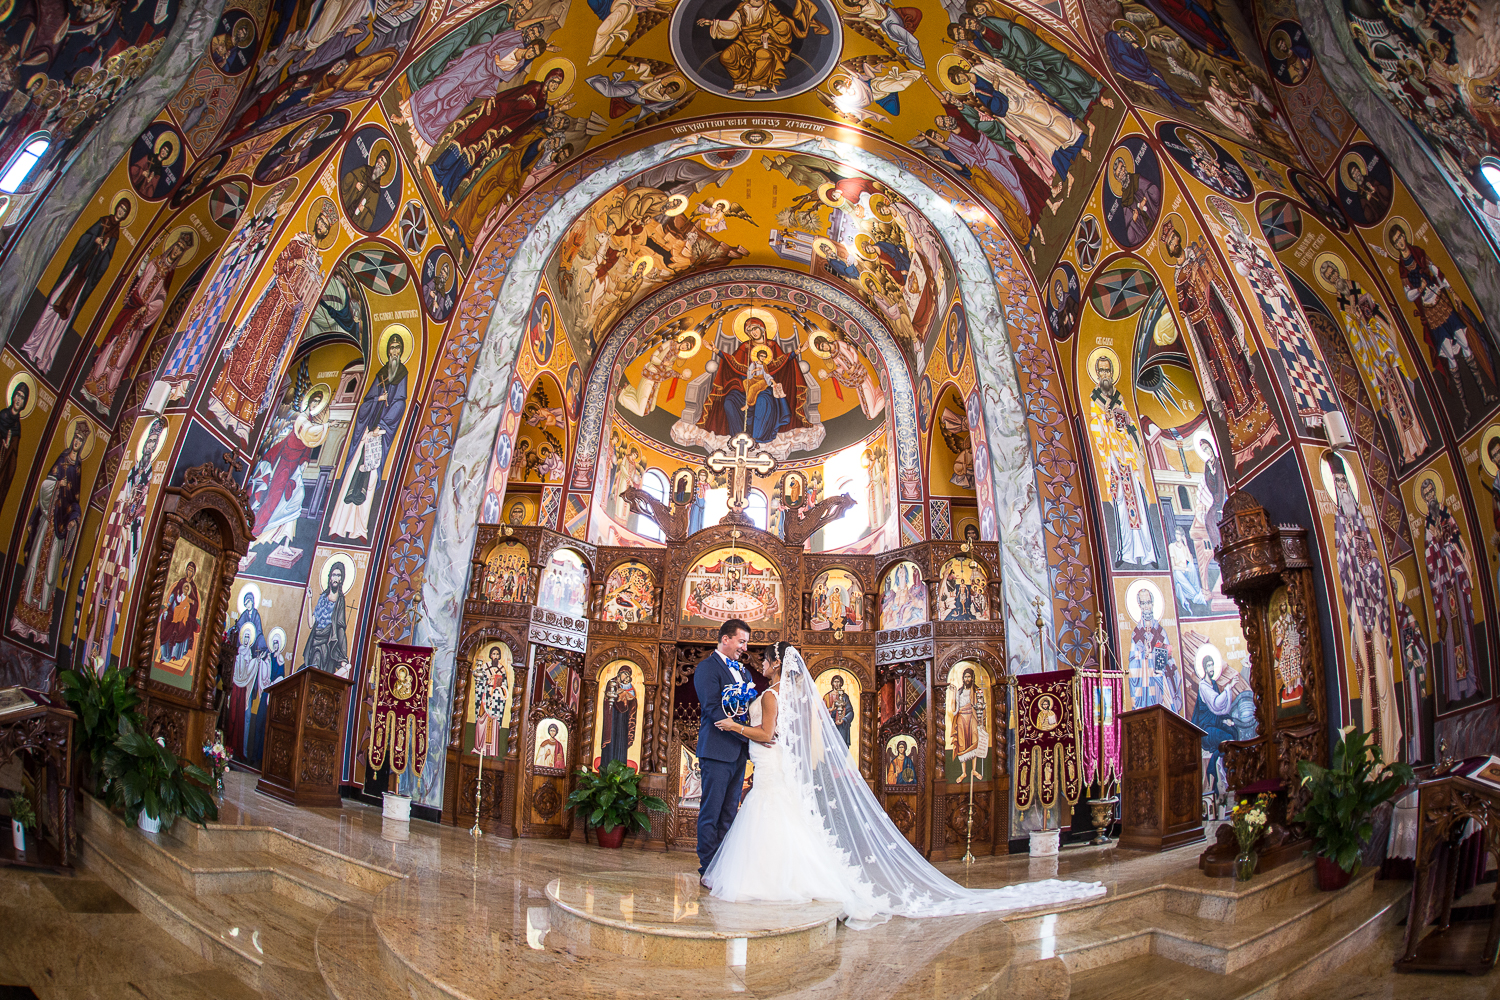 St-Sava-Serbian-Orthodox-Church-Wedding-Mississauga-Ontario-Derrel-Ho-Shing-Photography-0022-2.jpg